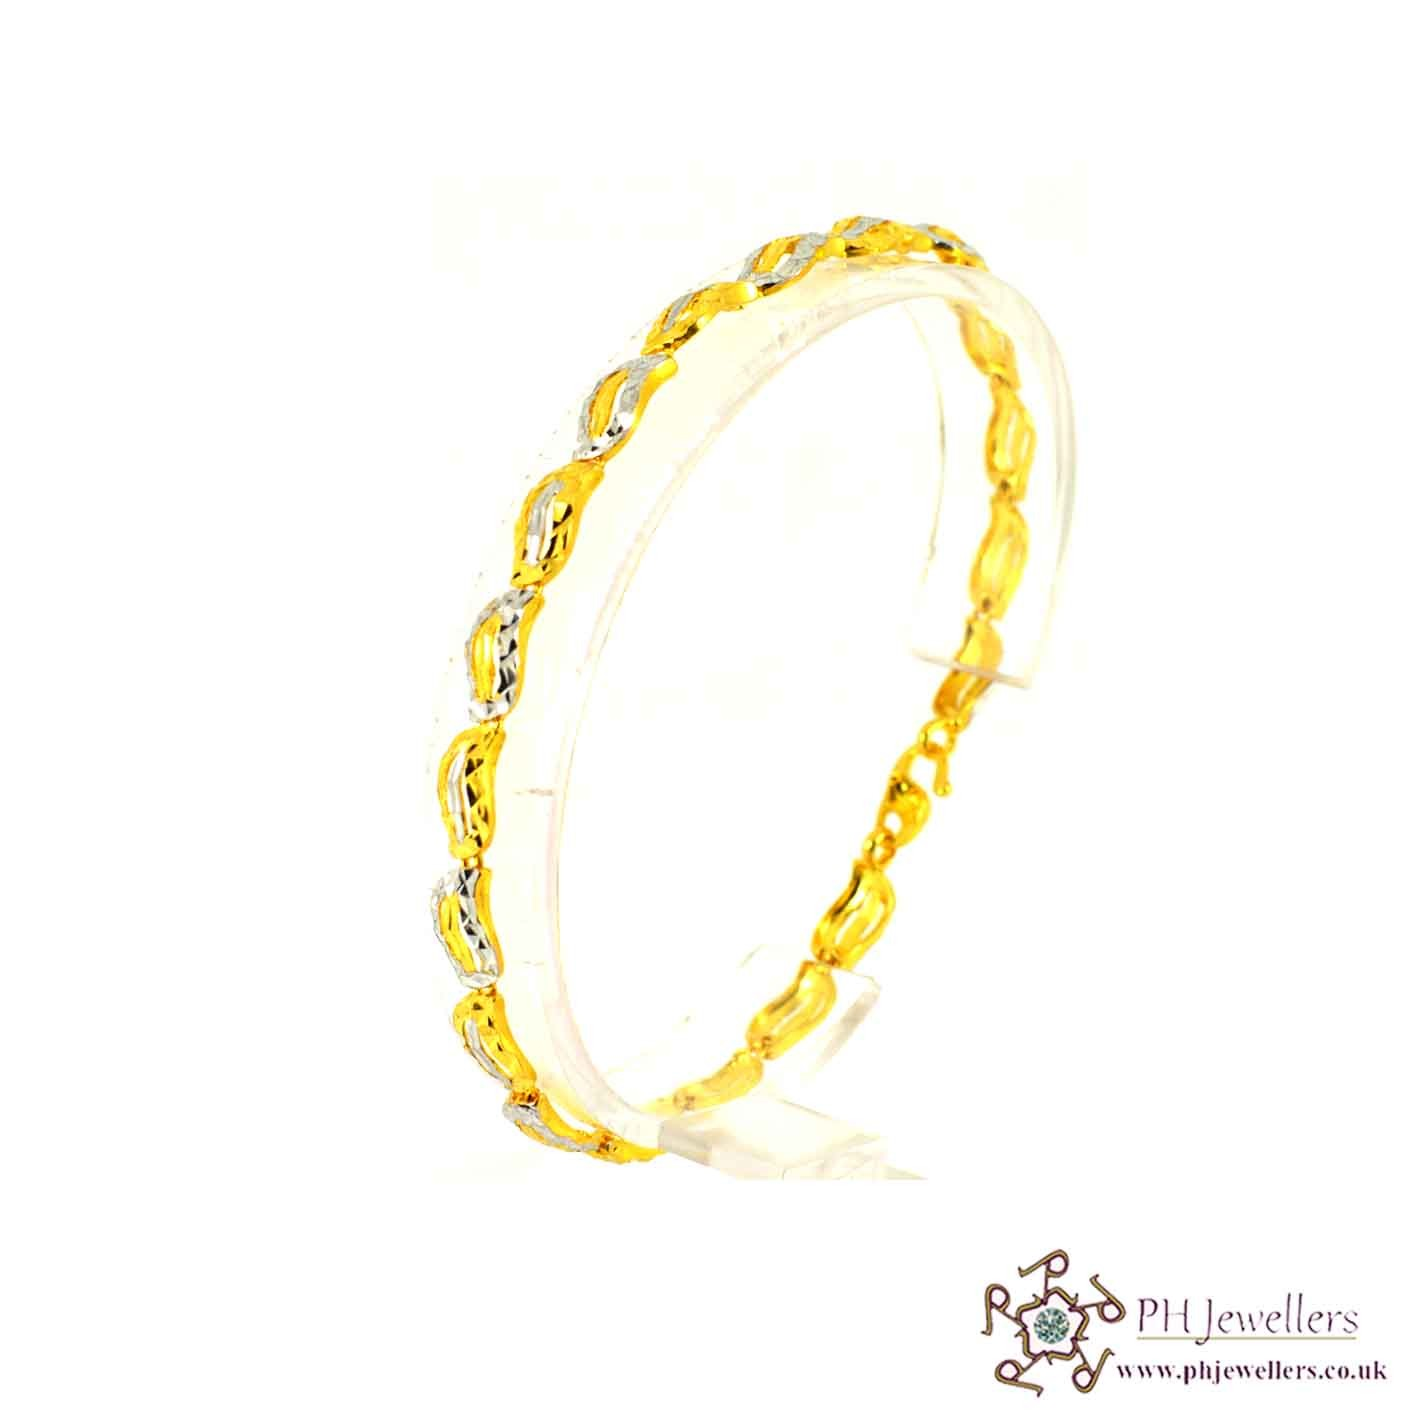 22ct 916 Hallmark Yellow Gold Rhodium Bracelet LB16